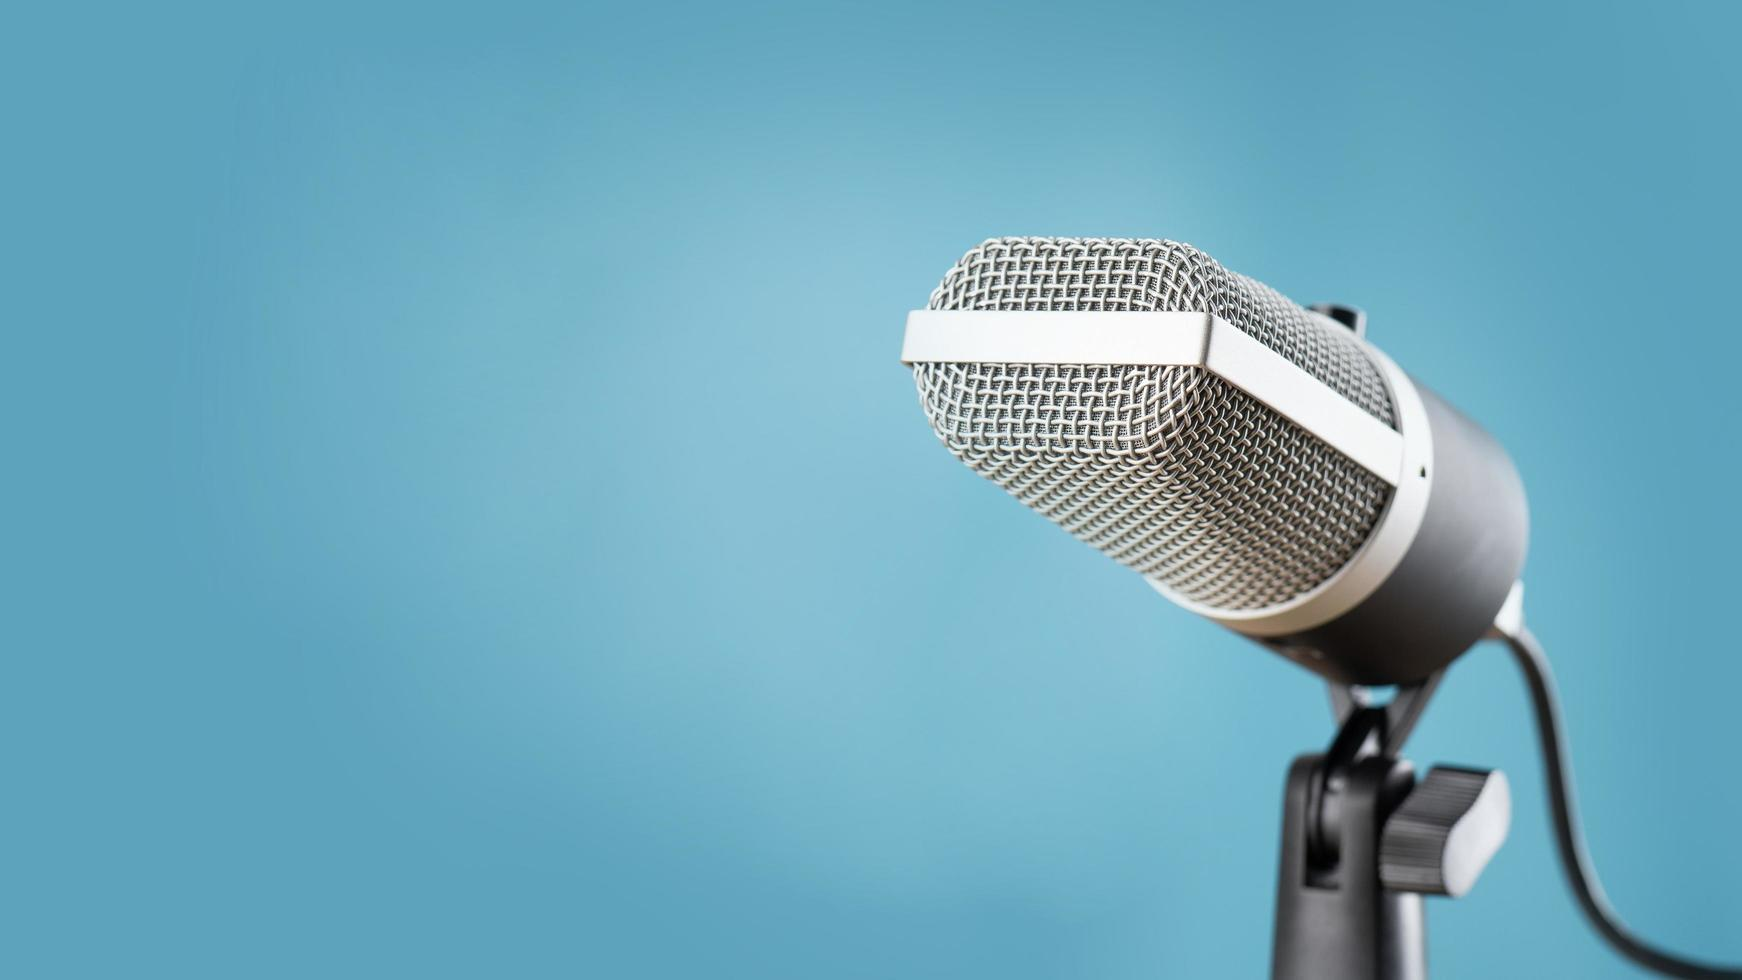 microphone for audio record or Podcast concept, single microphone on soft blue background  with copy space photo